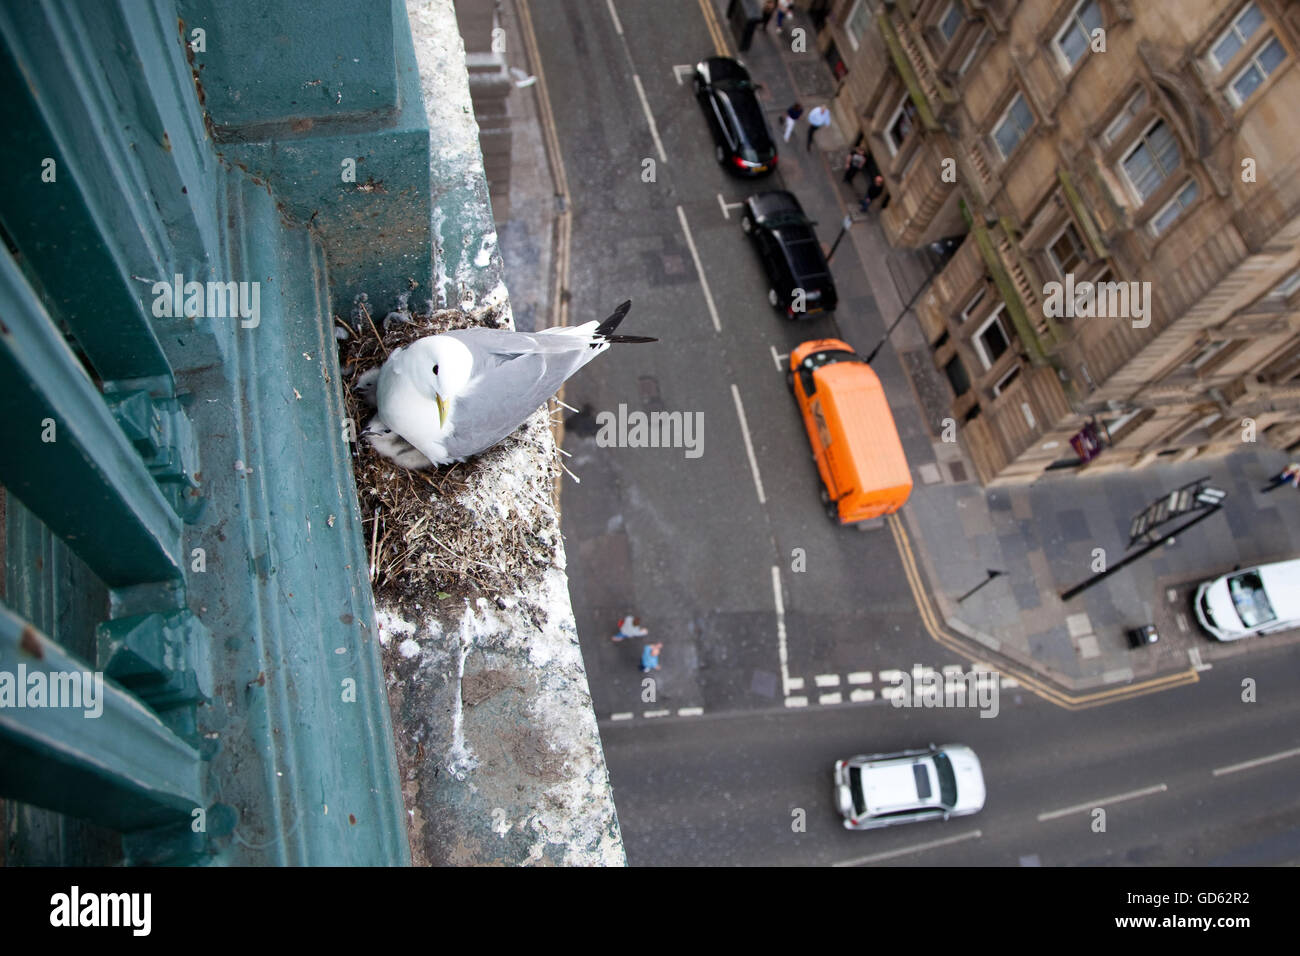 Kittiwakes (Rissa tridactyla) nesting on the Tyne Bridge in Newcastle, England. Stock Photo